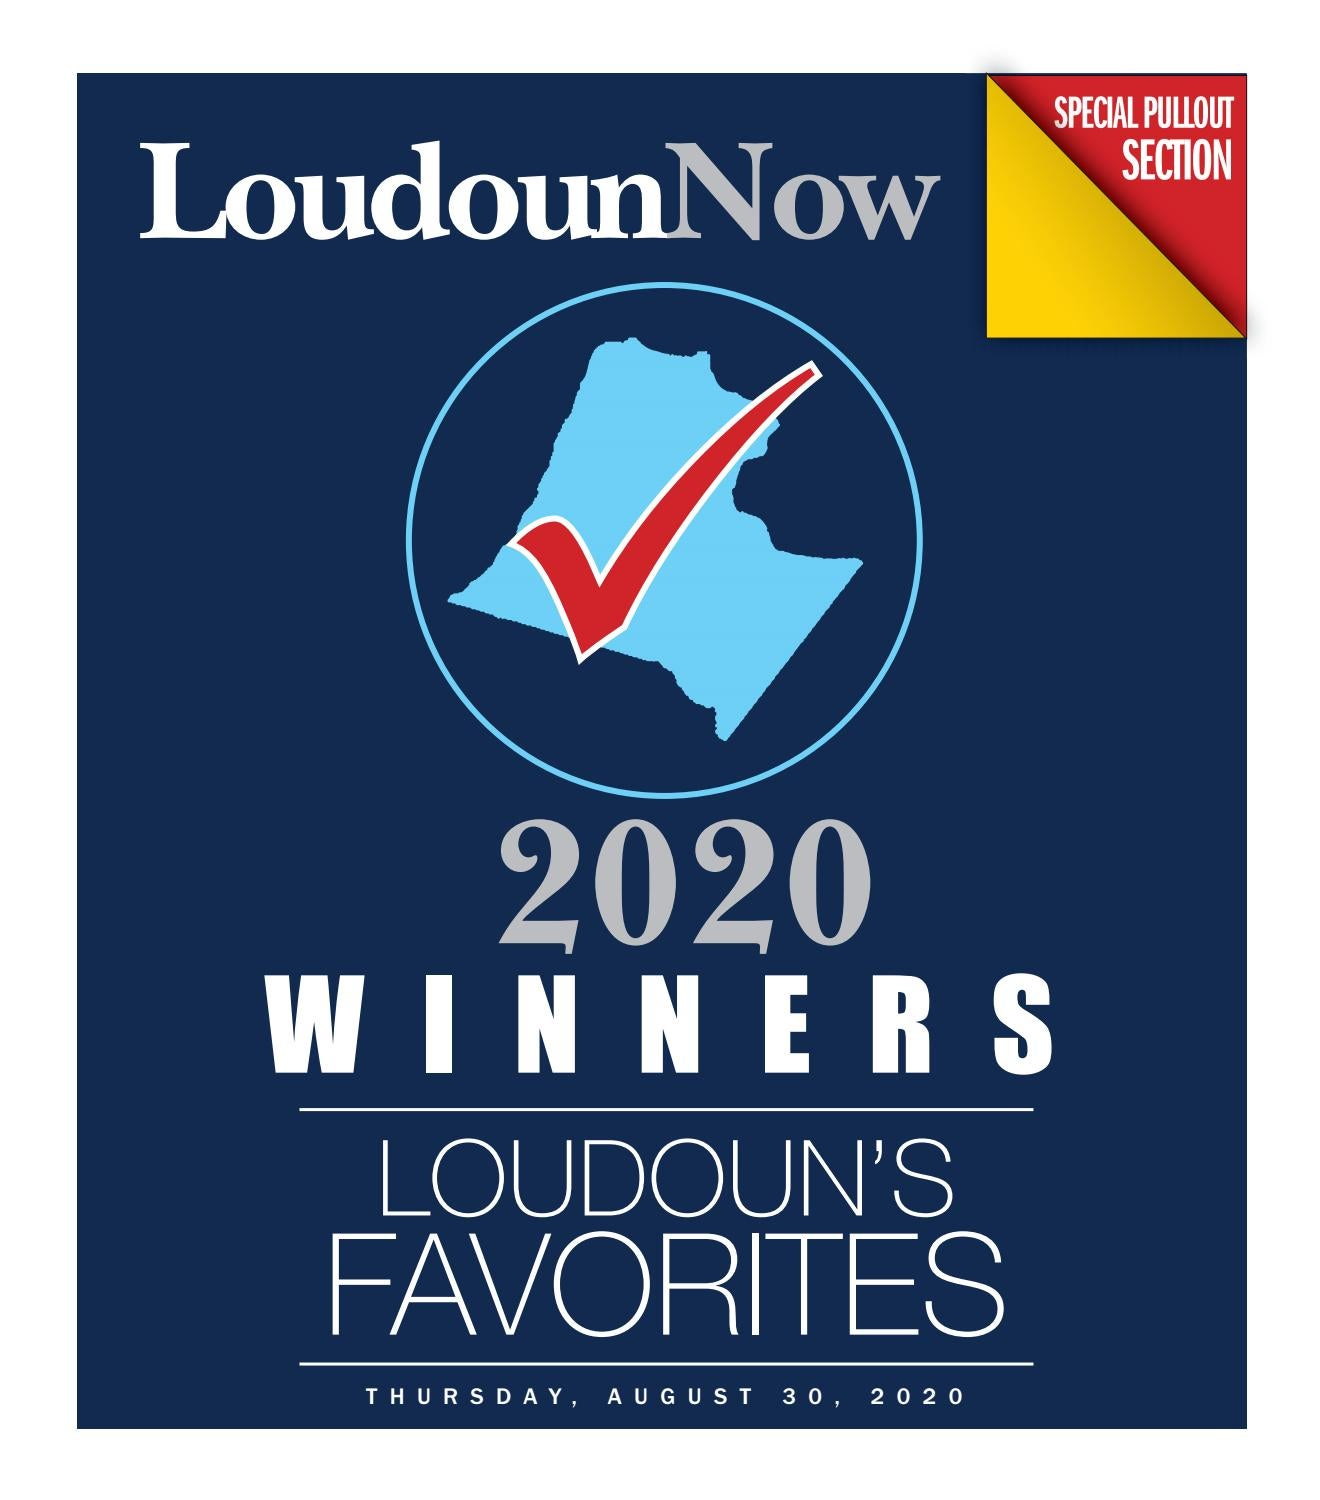 Favorite Christmas Special Poll 2020 2020 Loudoun's Favorites Readers' Poll Results by Loudoun Now   issuu